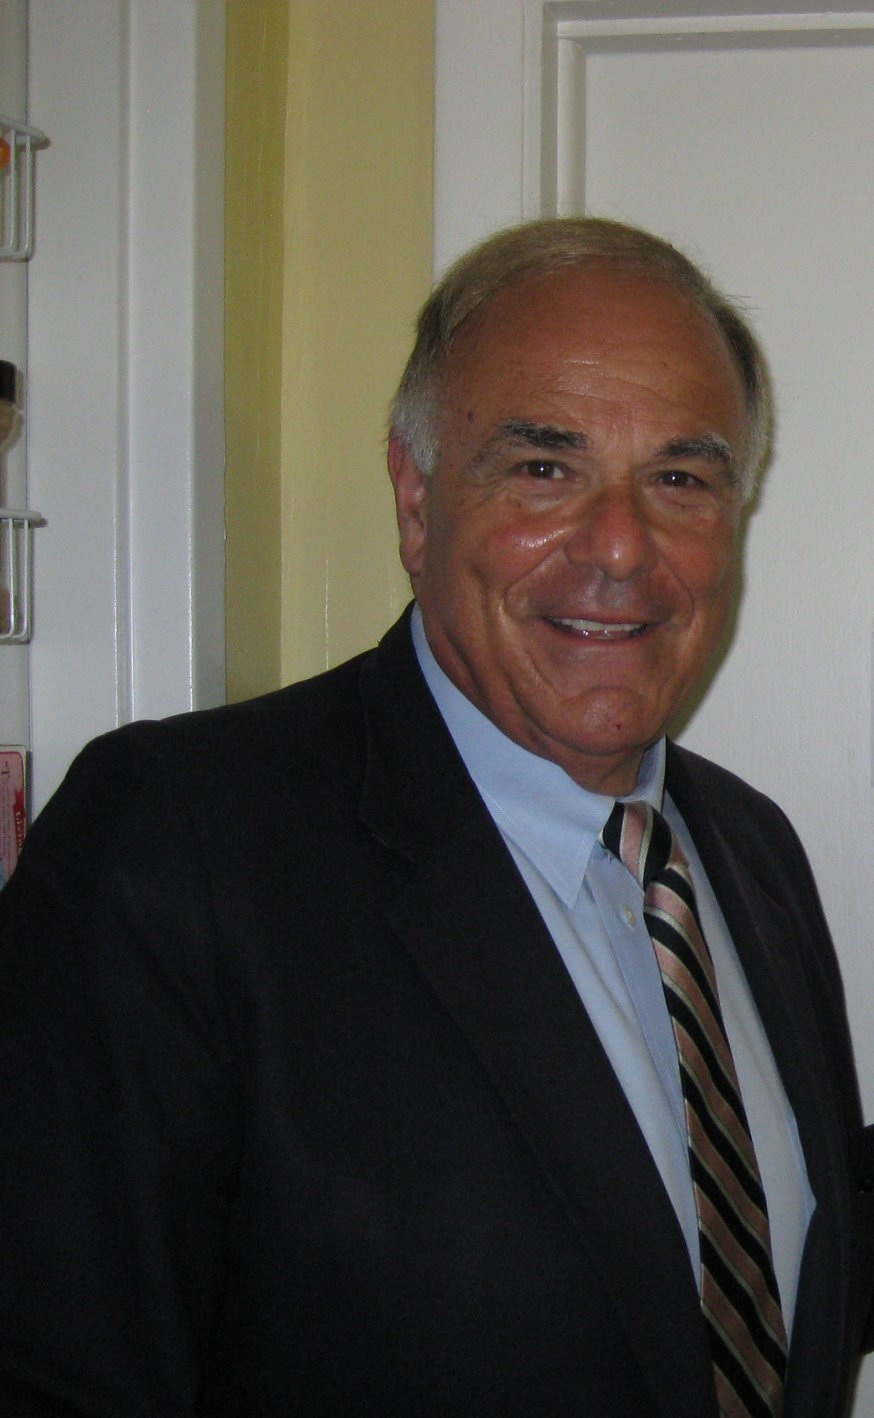 Ed Rendell's quote #6